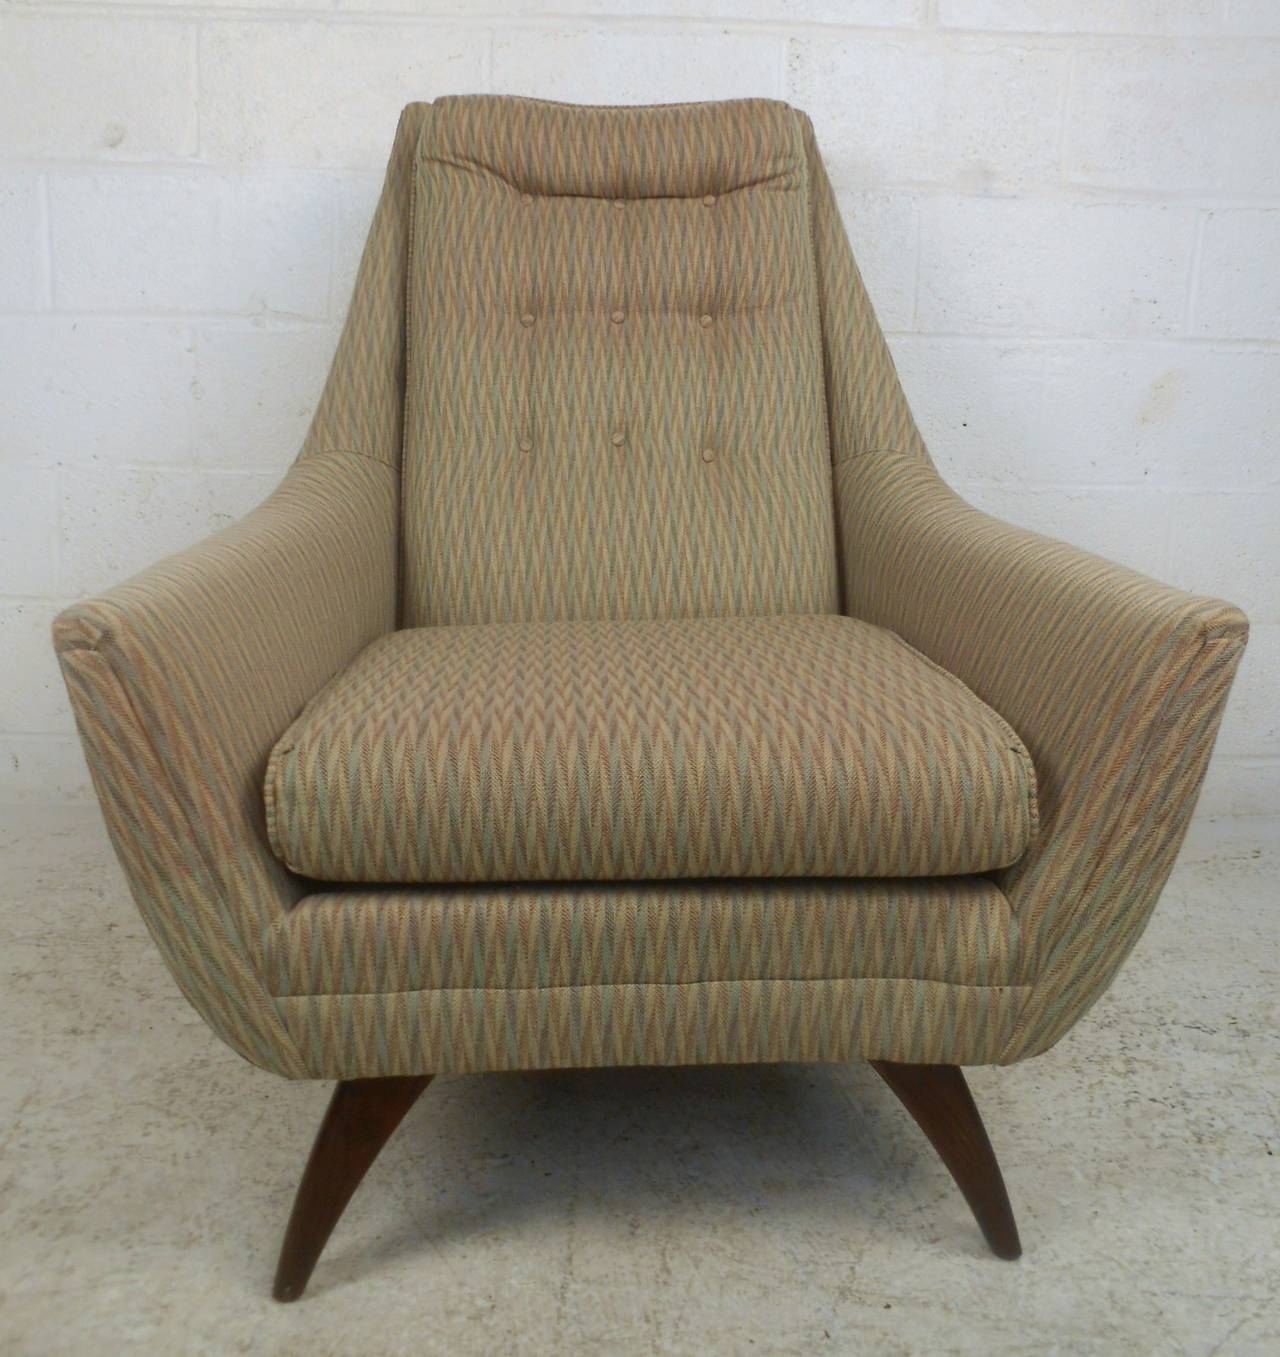 Adrian Pearsall Style Midcentury Tufted Lounge Chair For Sale at 1stdibs